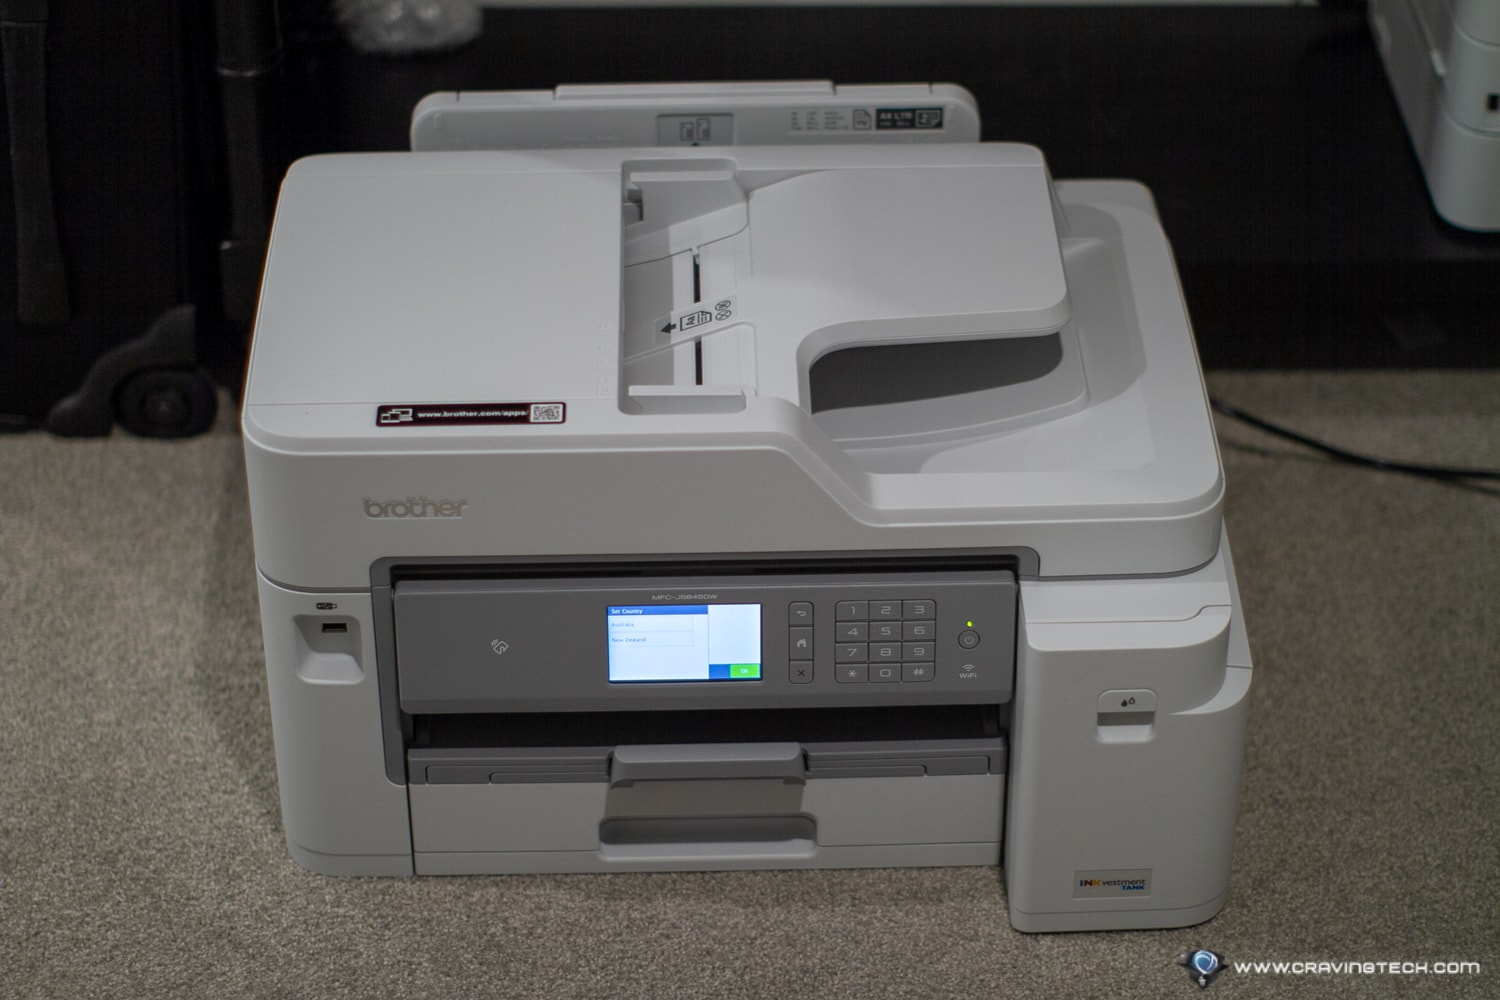 Brother MFC-J5845DW MFC Printer Review